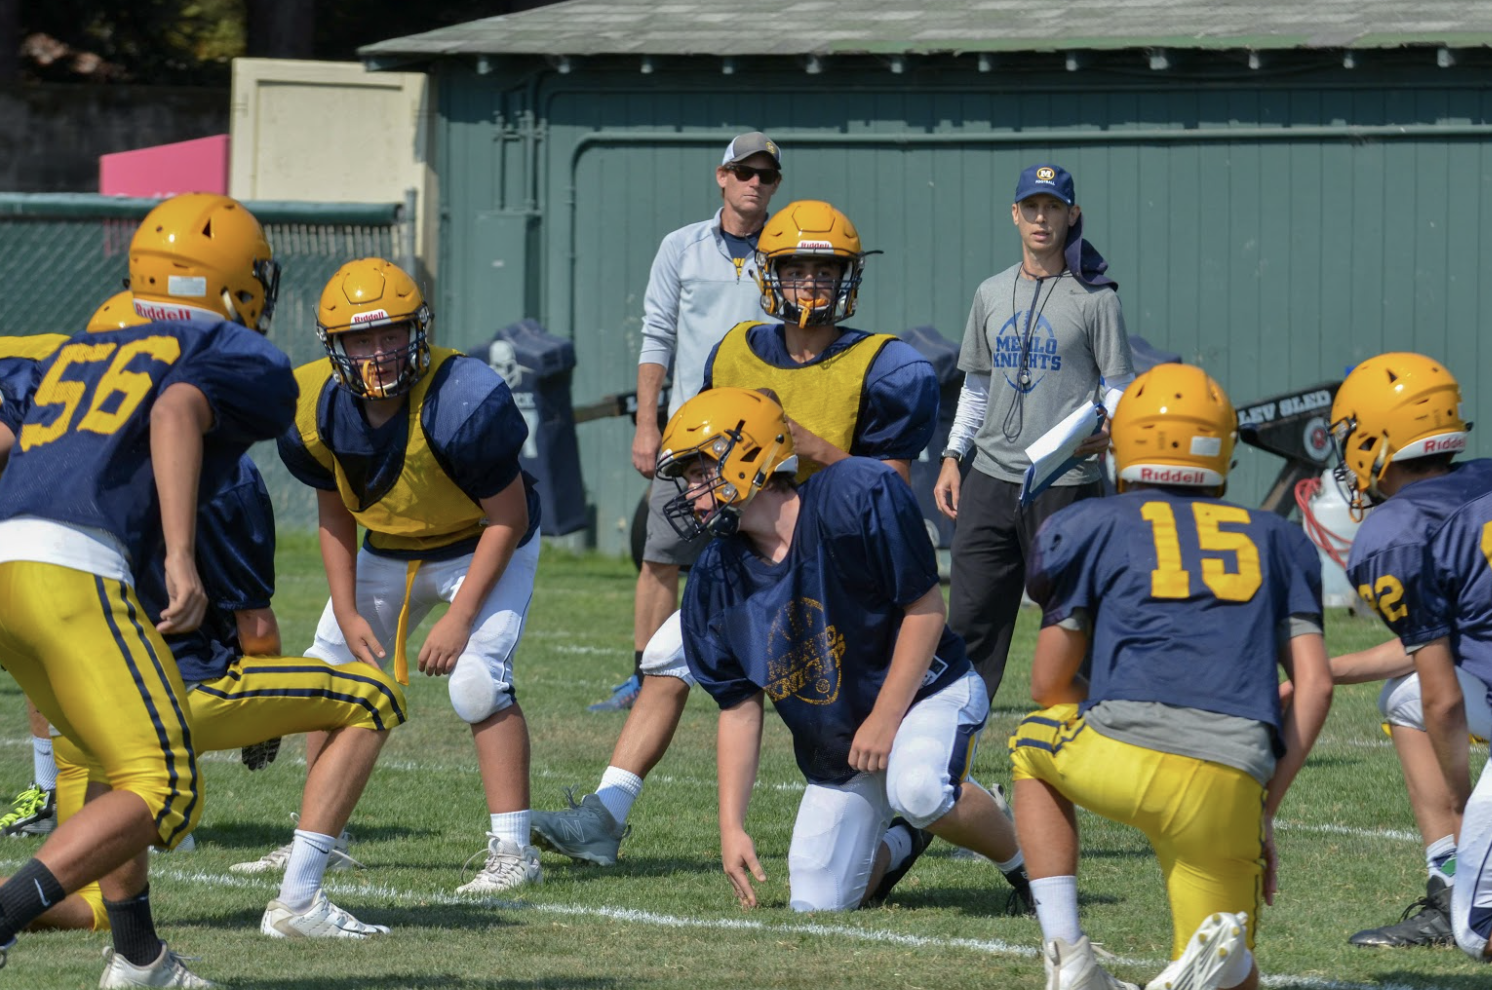 Menlo football players at a pre-season practice. Photo courtesy of Pam Tso McKenney.